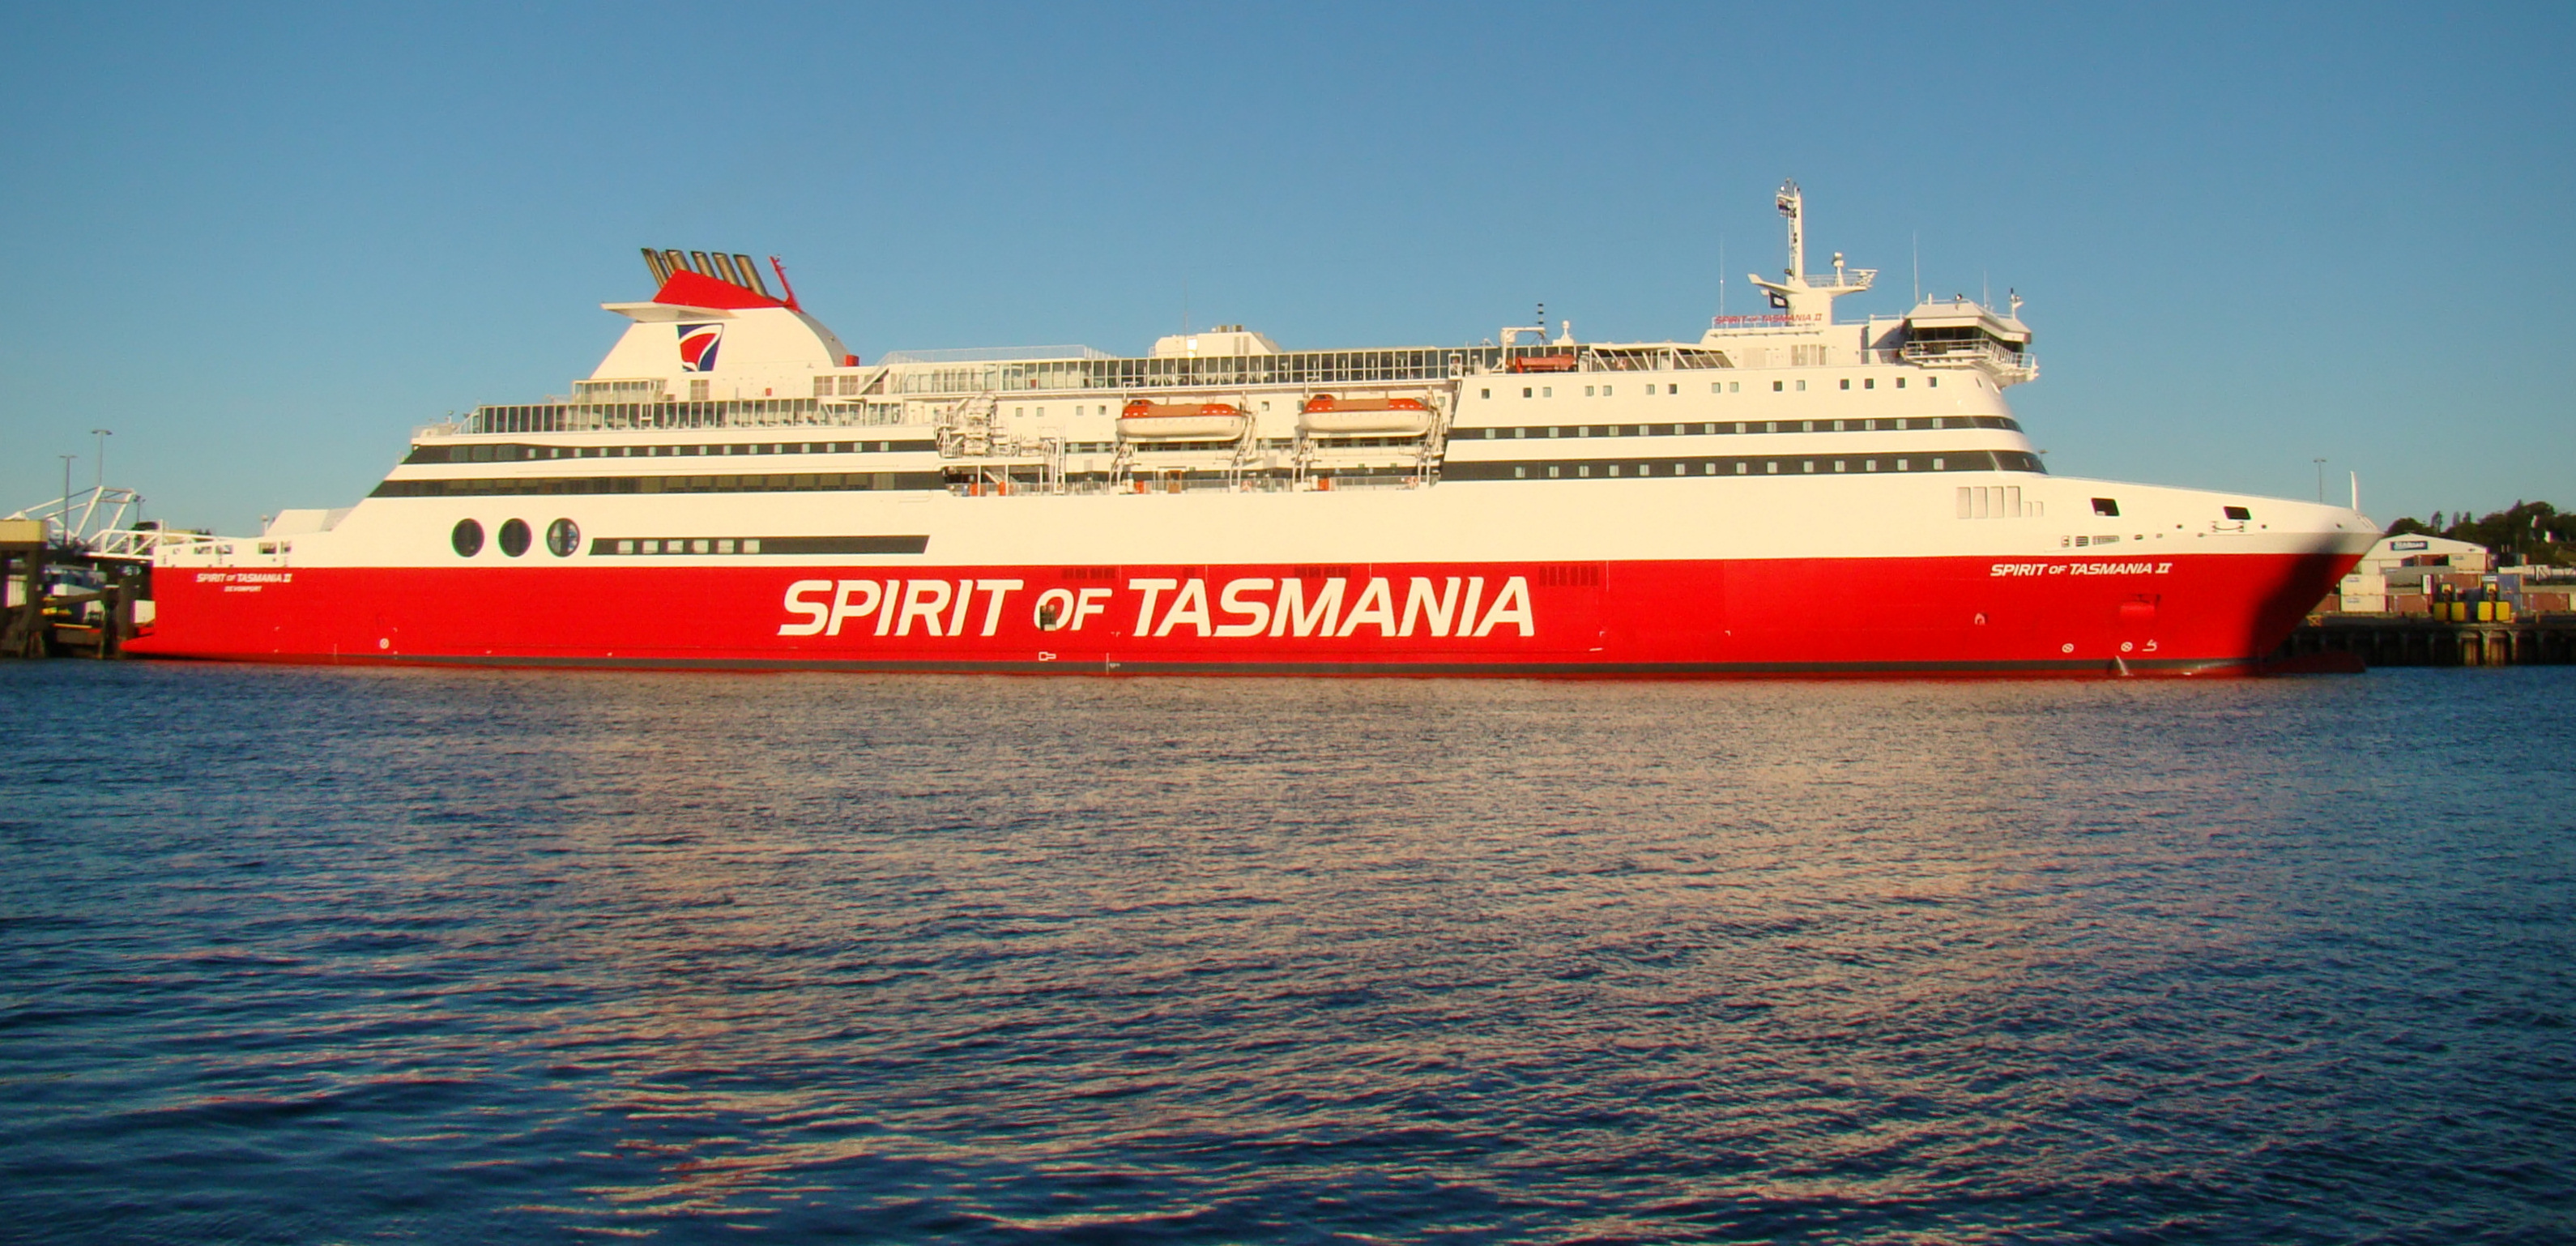 dating tasmania devonport Guide to tasmanian walking the spirit of tasmania ferry sails into devonport from melbourne daily and a restored heritage-listed house dating back to 1880.